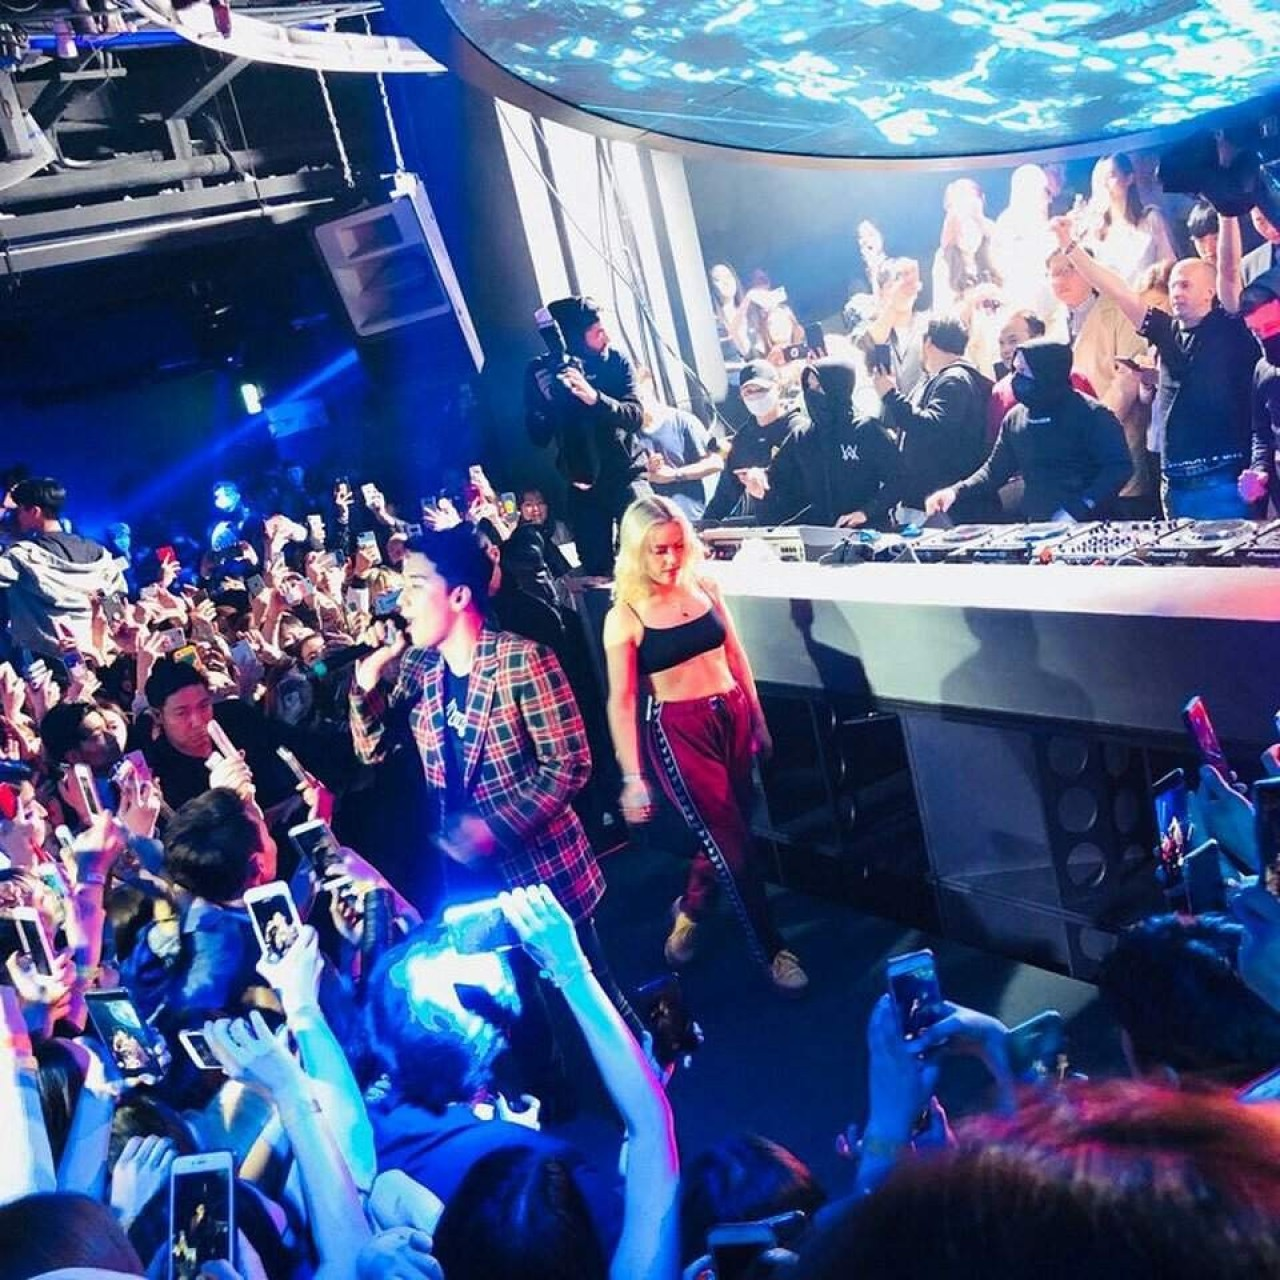 Nightclub linked to K-pop star Seungri investigated over alleged